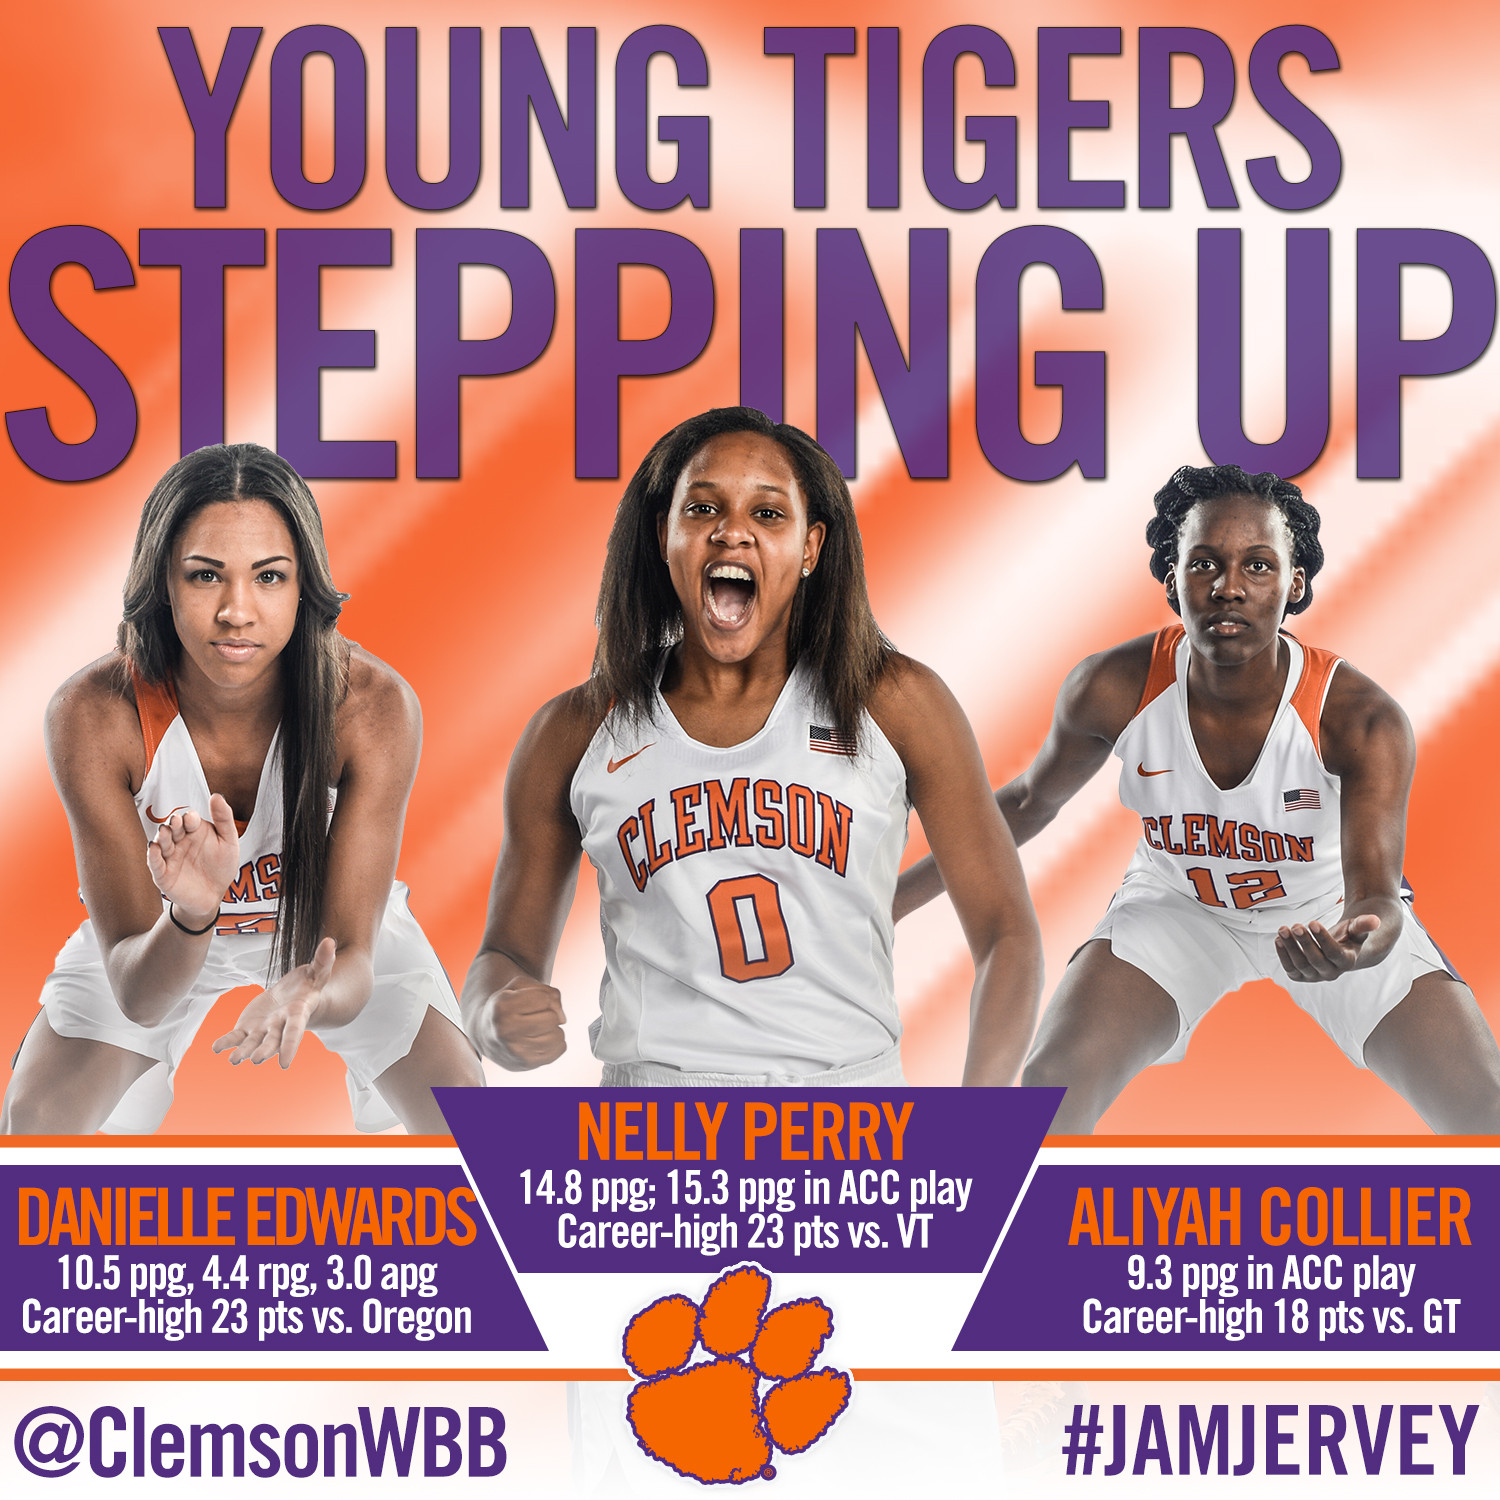 WBB Feature | Young Tigers Stepping Up